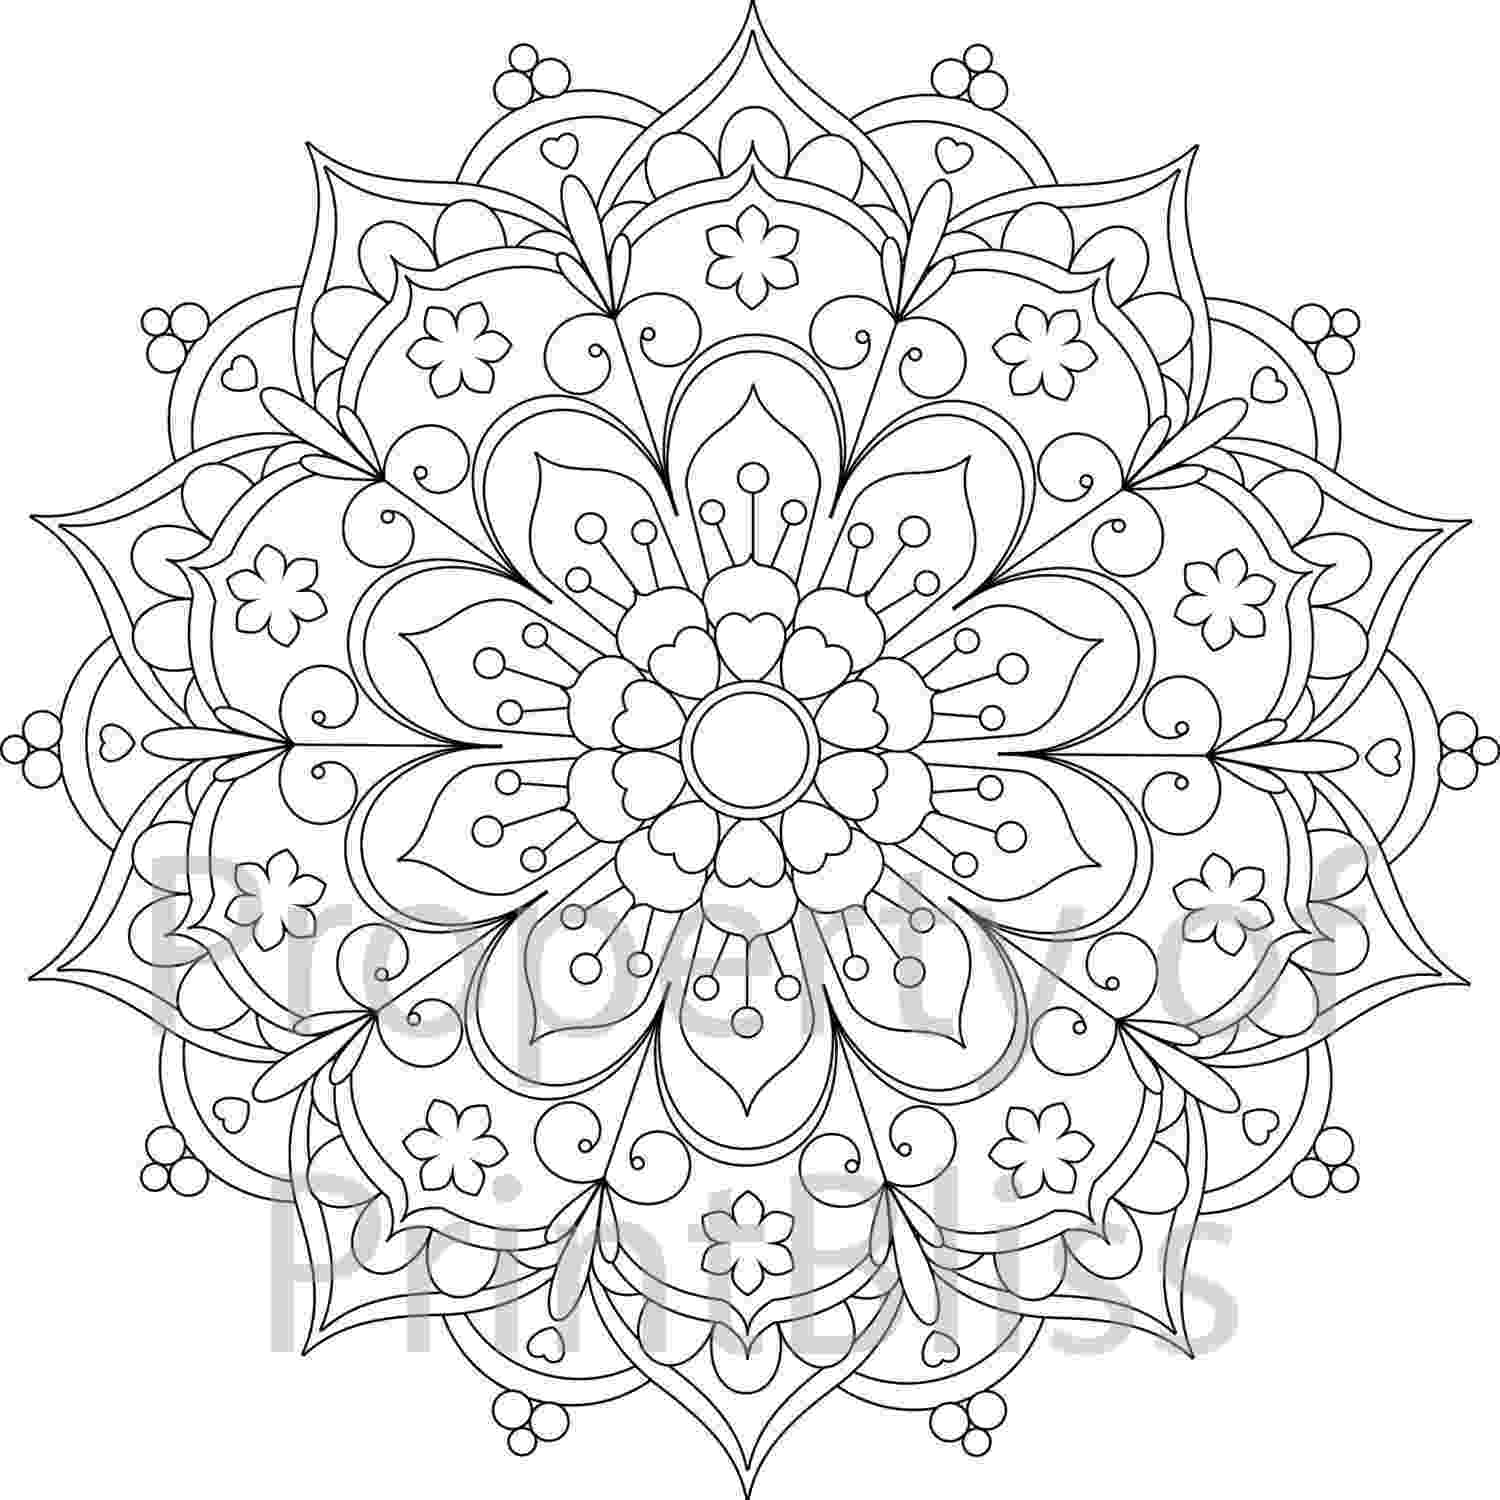 free online mandala coloring pages for adults free printable mandala coloring pages for adults best online free coloring mandala adults for pages